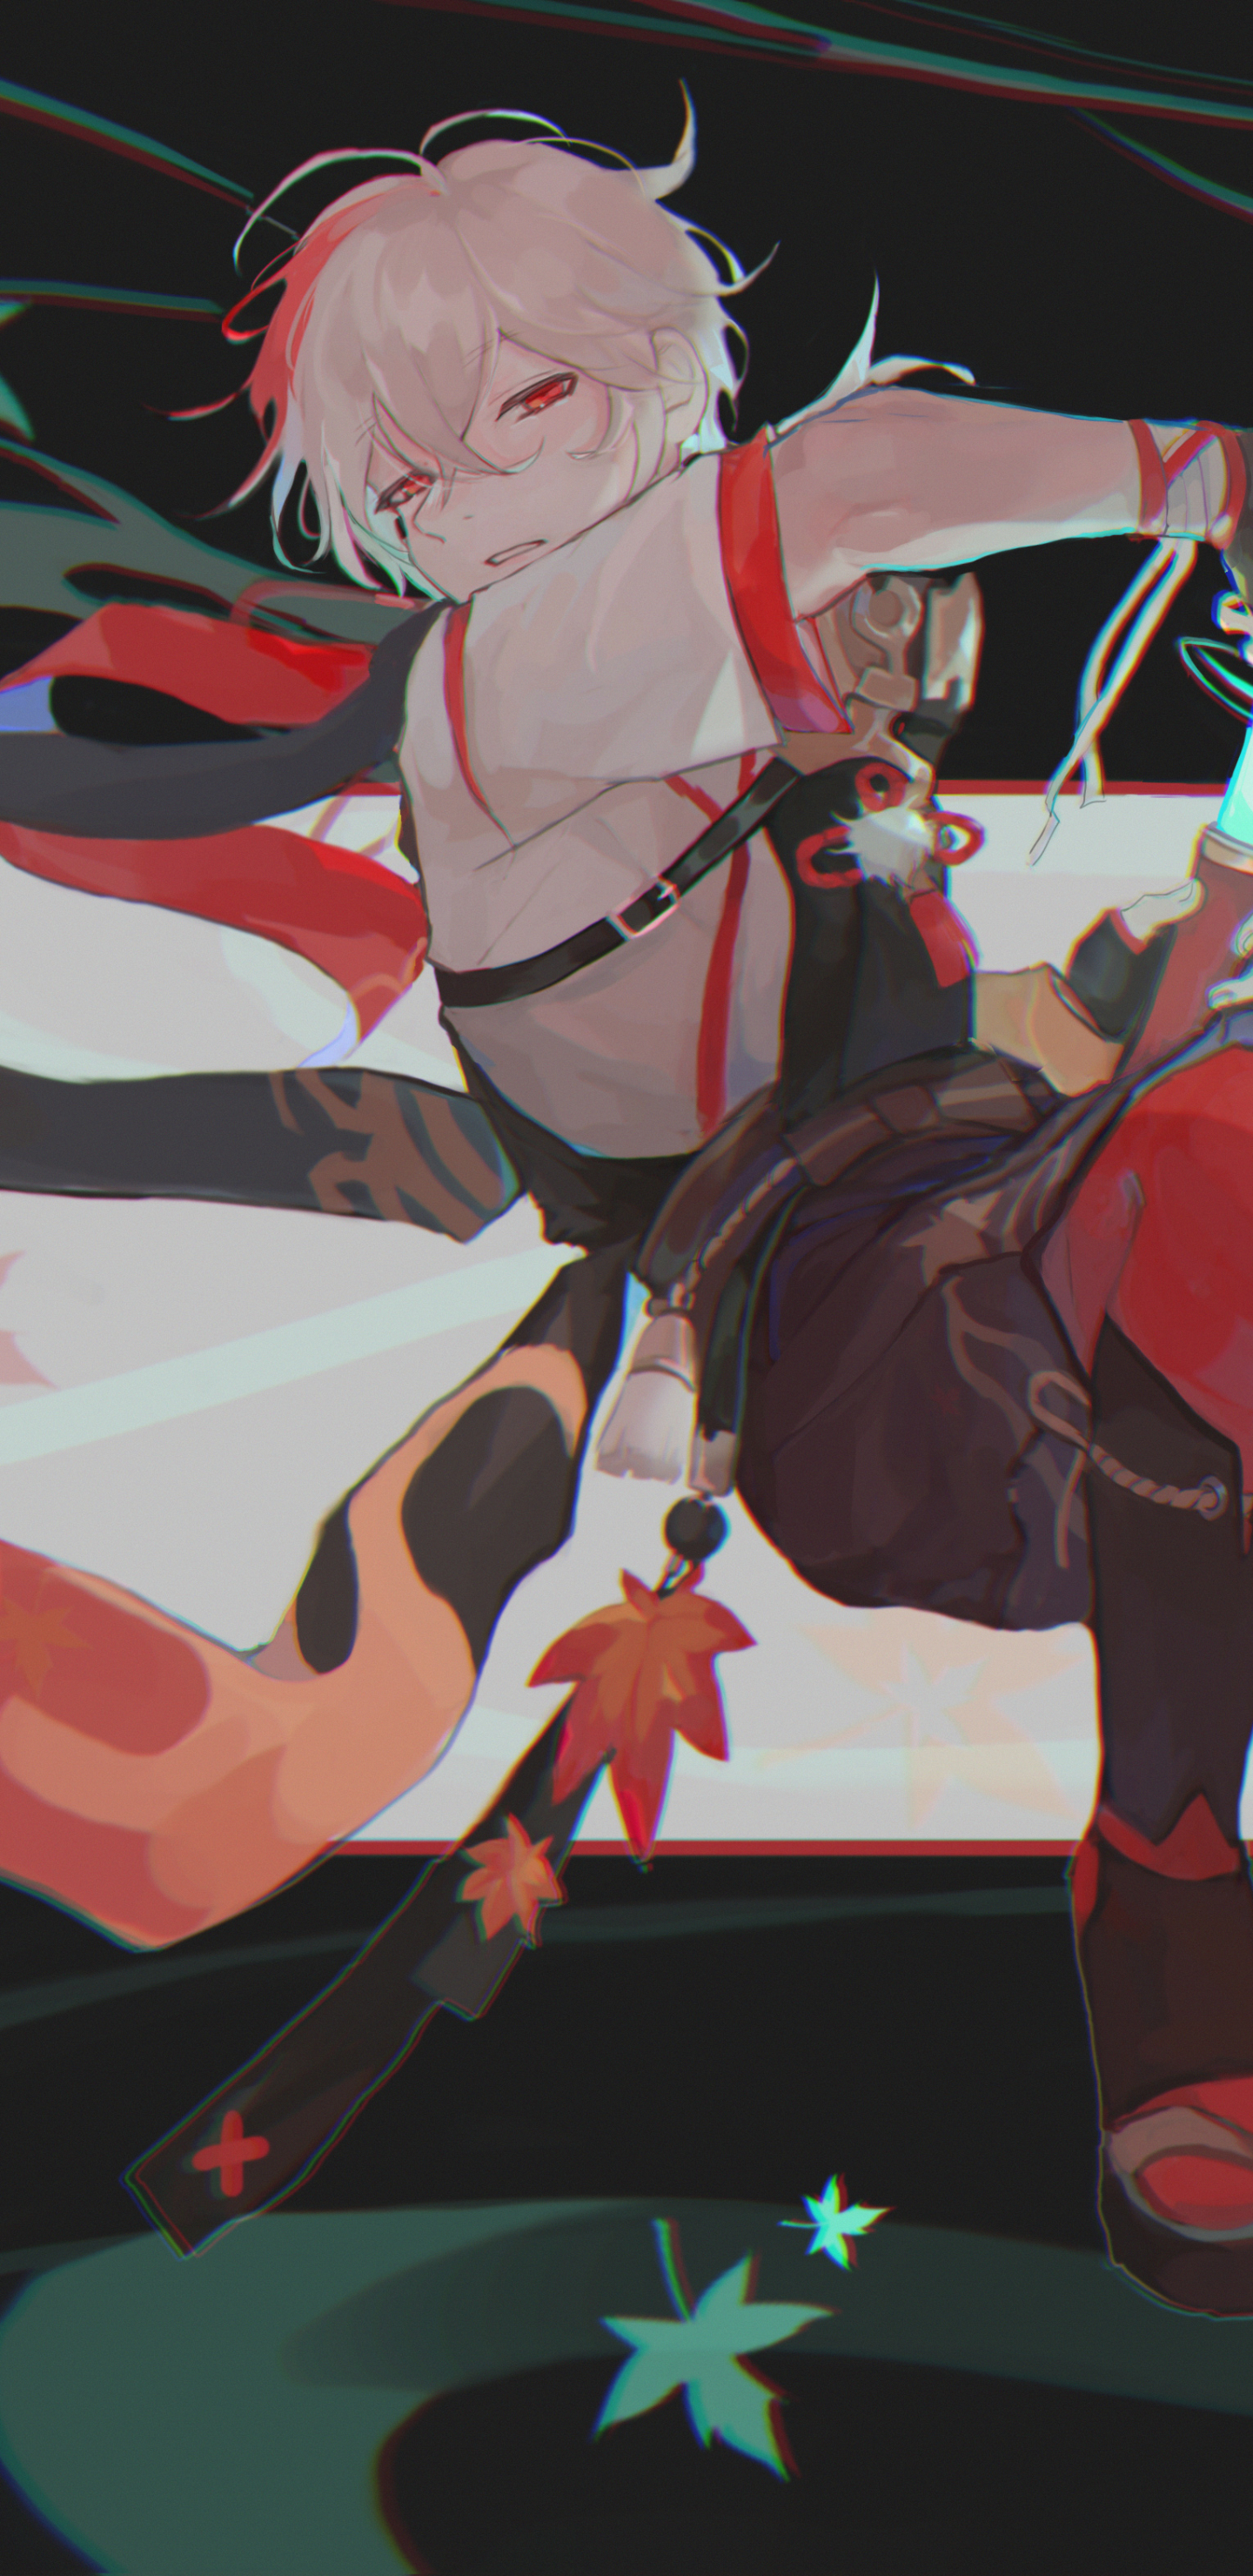 Genshin Impact Paimon Wallpapers Android